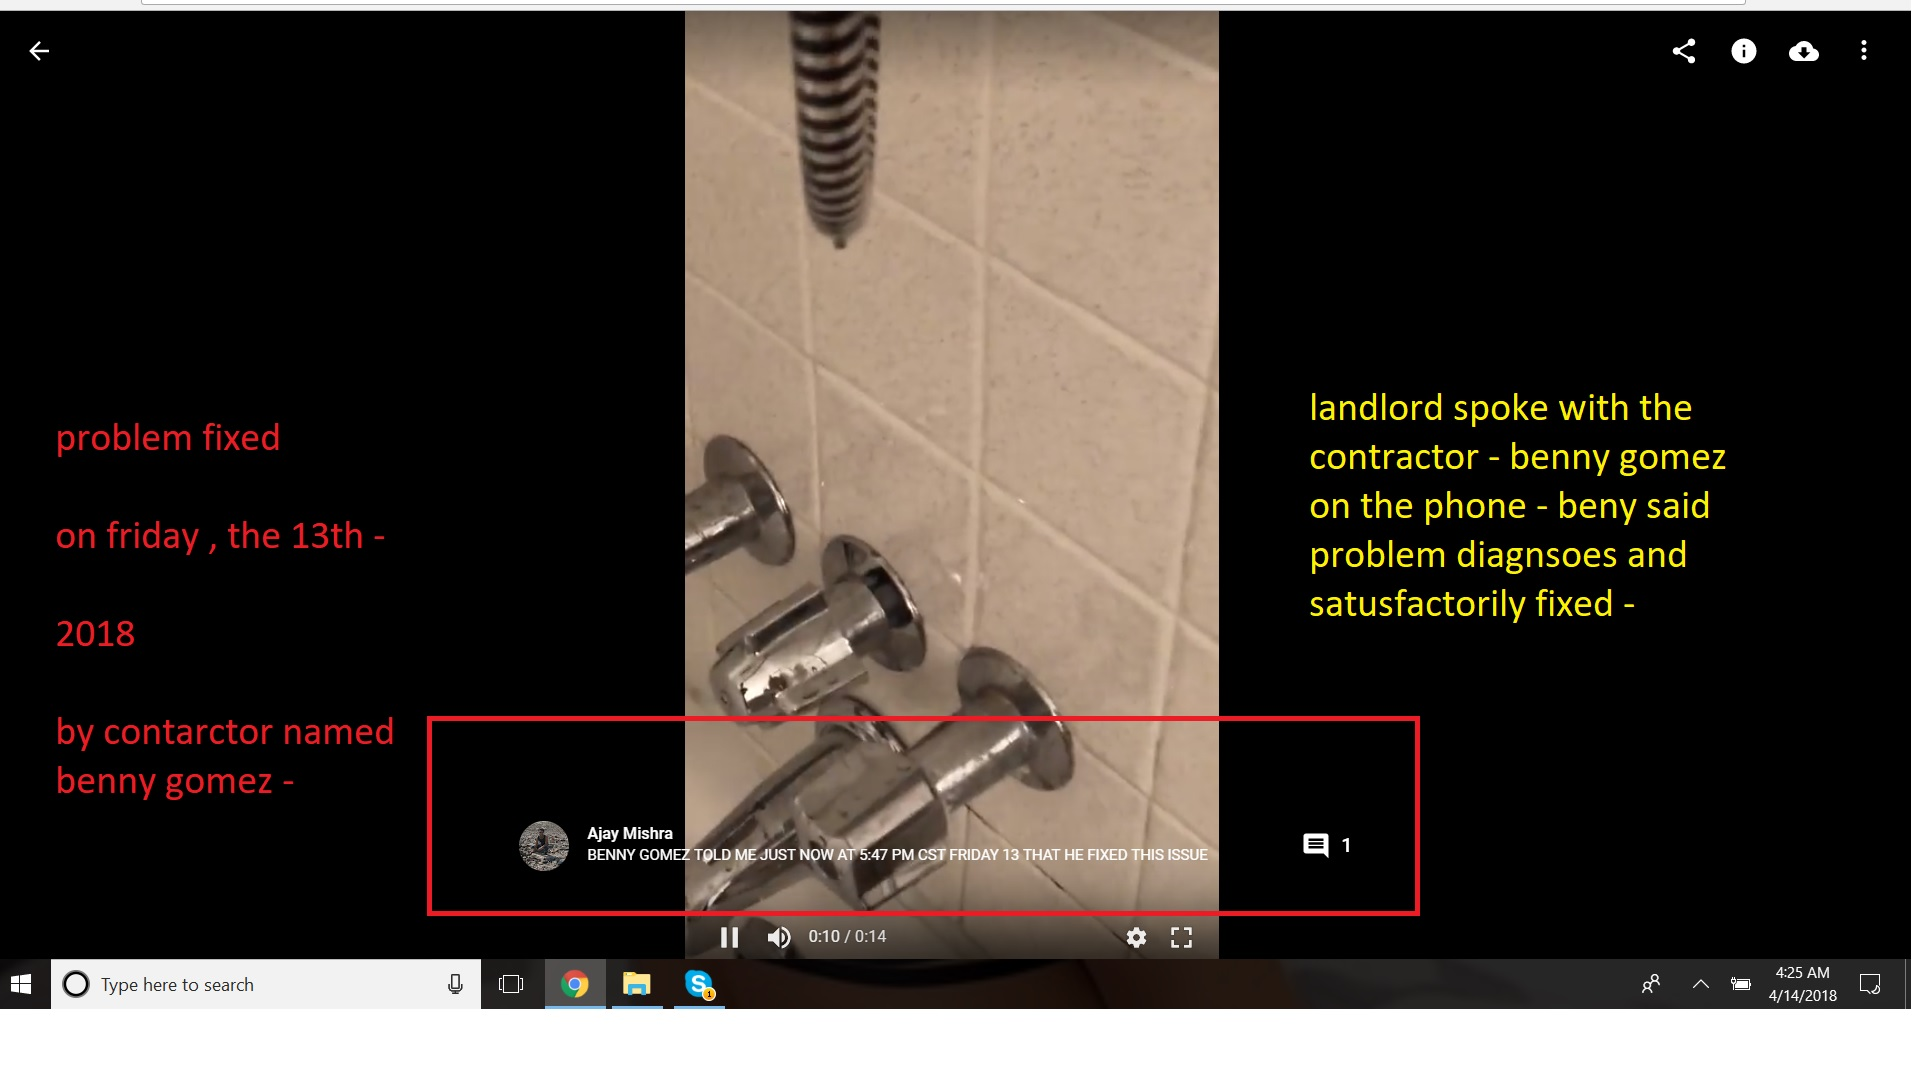 landlord spoke with the contractor - benny gomez on the phone - beny said problem diagnsoes and satusfactorily fixed -